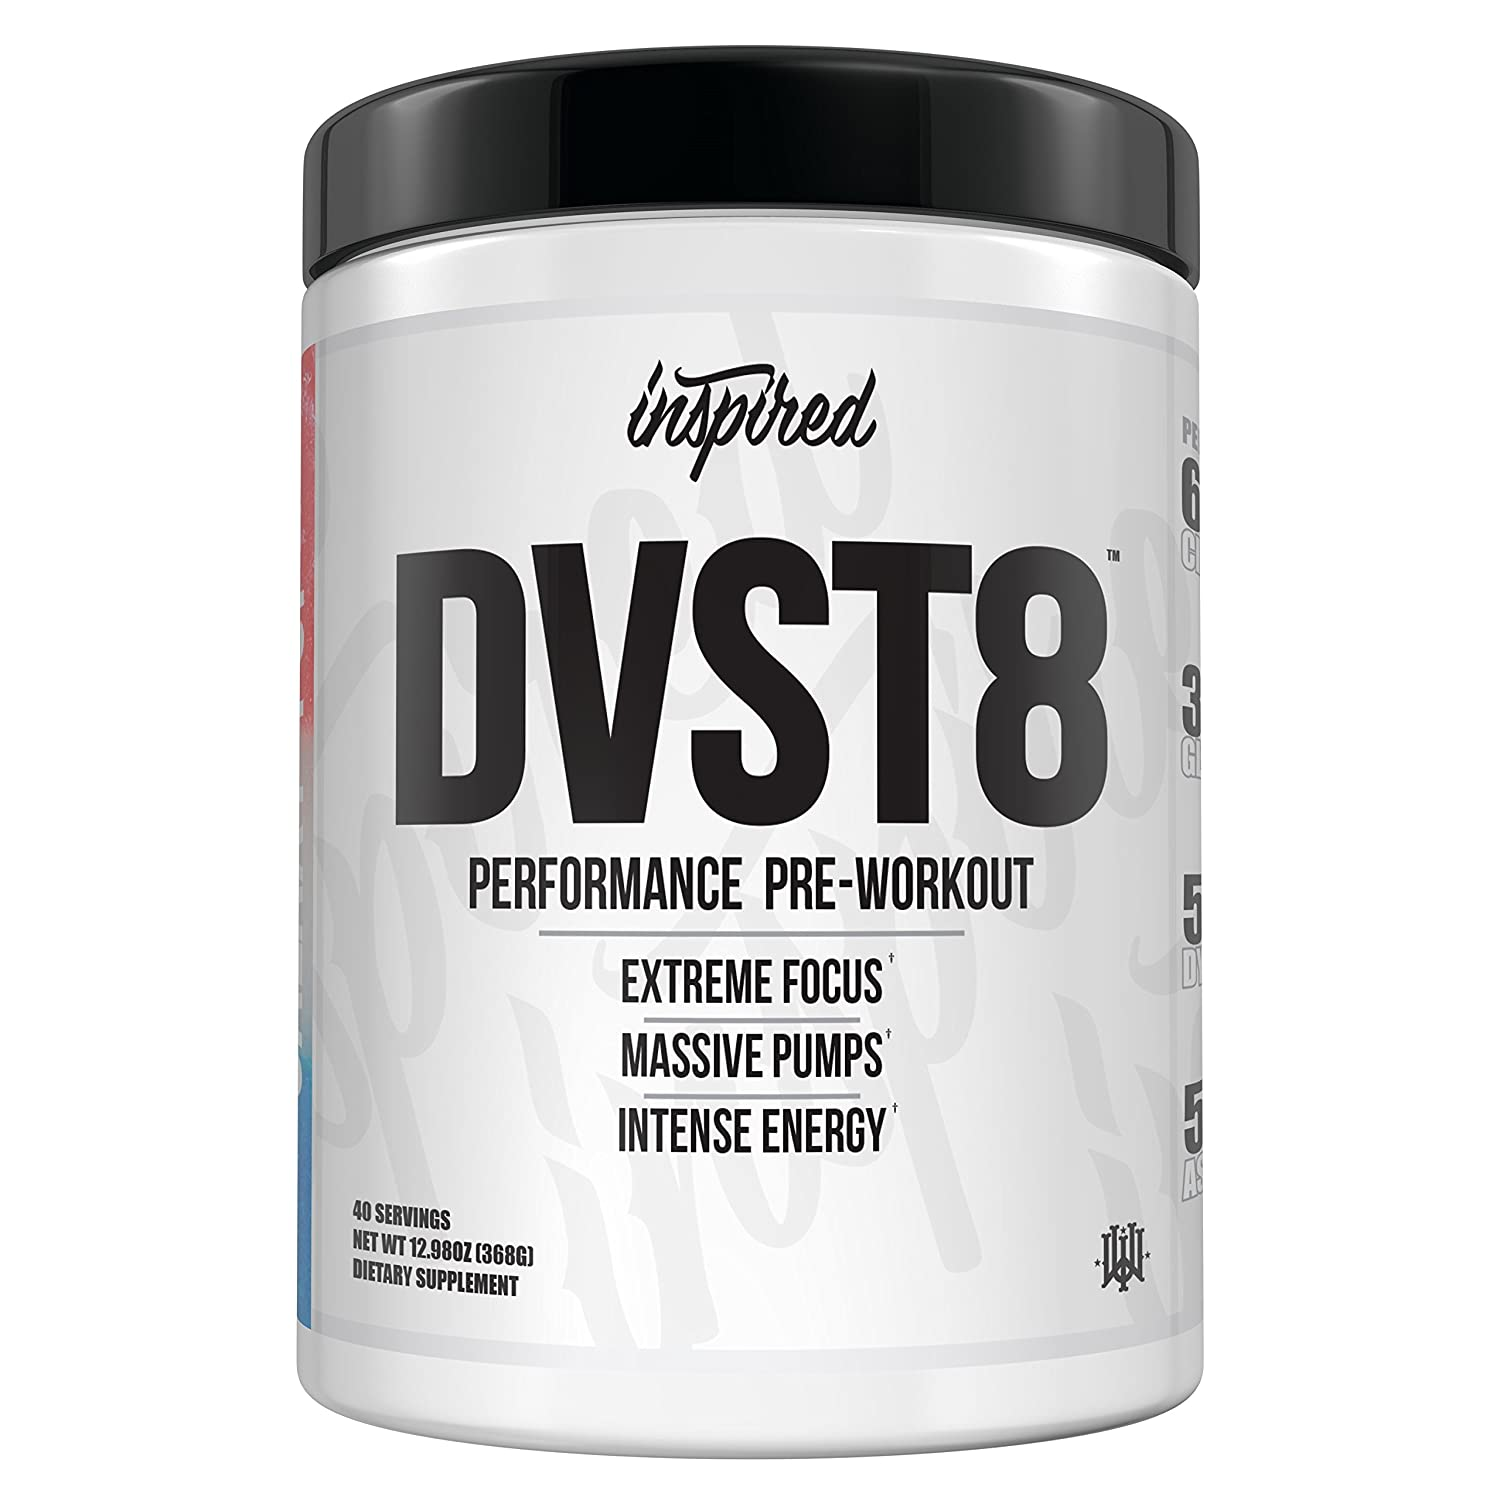 Inspired DVST8 Ultra Extreme Performance Pre-Workout Powder, Citrulline, Beta-Alanine, Dynamine Orchard Apple 40 Servings